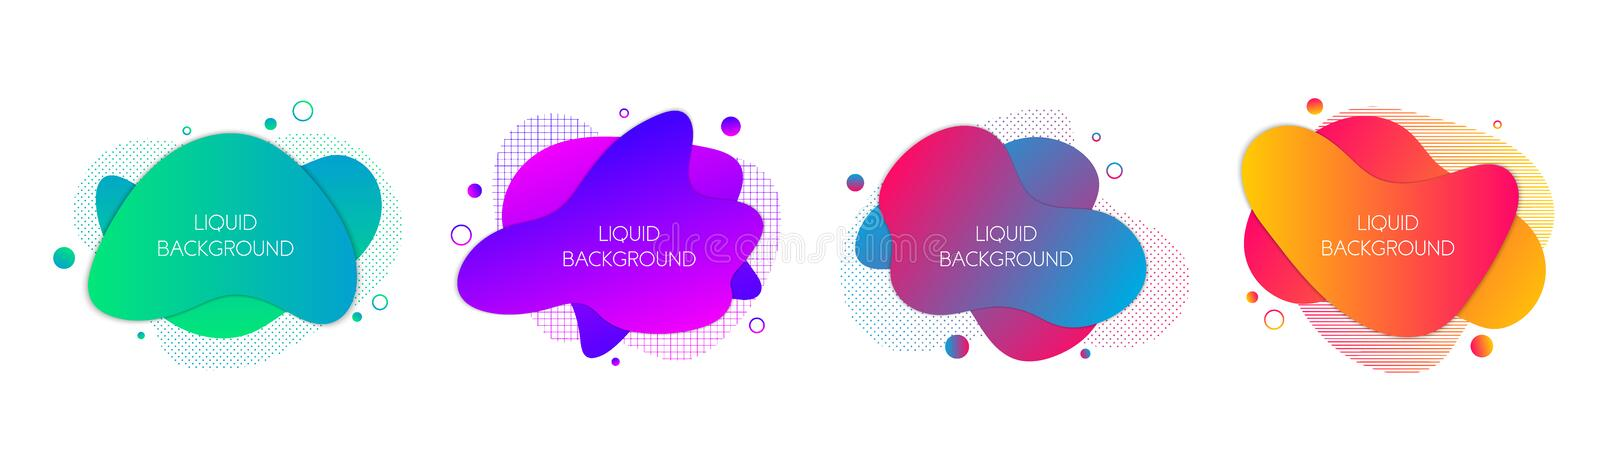 Set of 4 abstract modern graphic liquid elements. Dynamical waves vivid colors fluid forms. Isolated banners with flowing liquid vector illustration